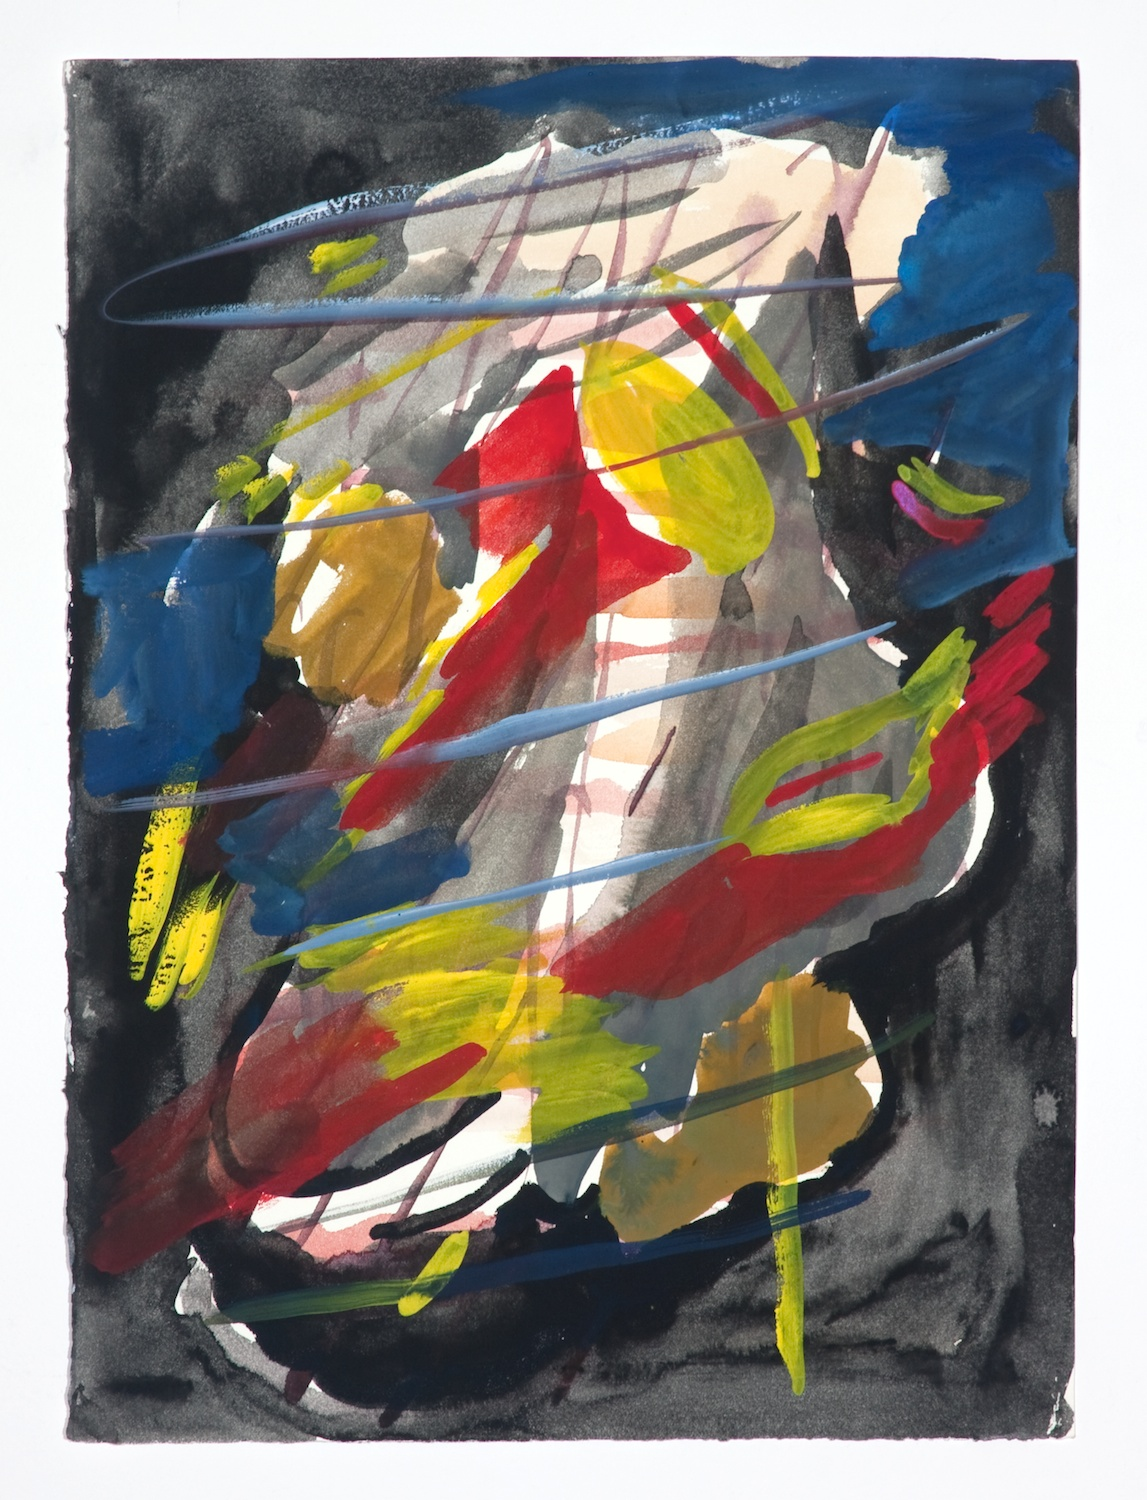 Jon Pestoni  Untitled  2009 Gouache on paper 18 ¼h x 14 ½w in JP080